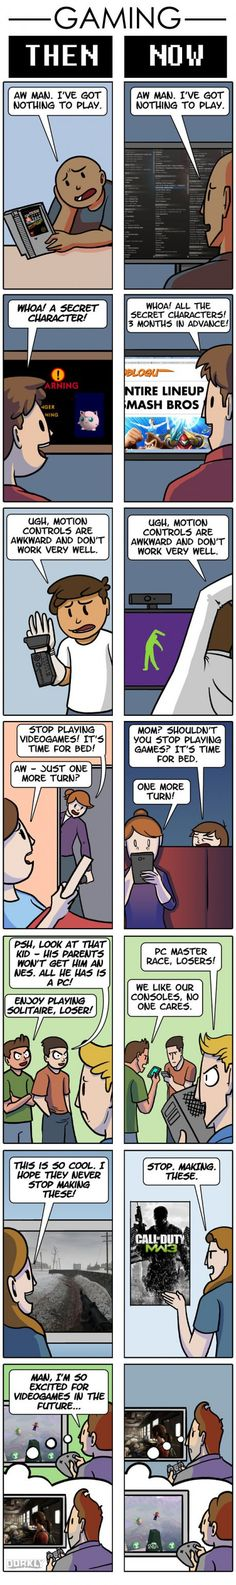 Gaming, Then and Now